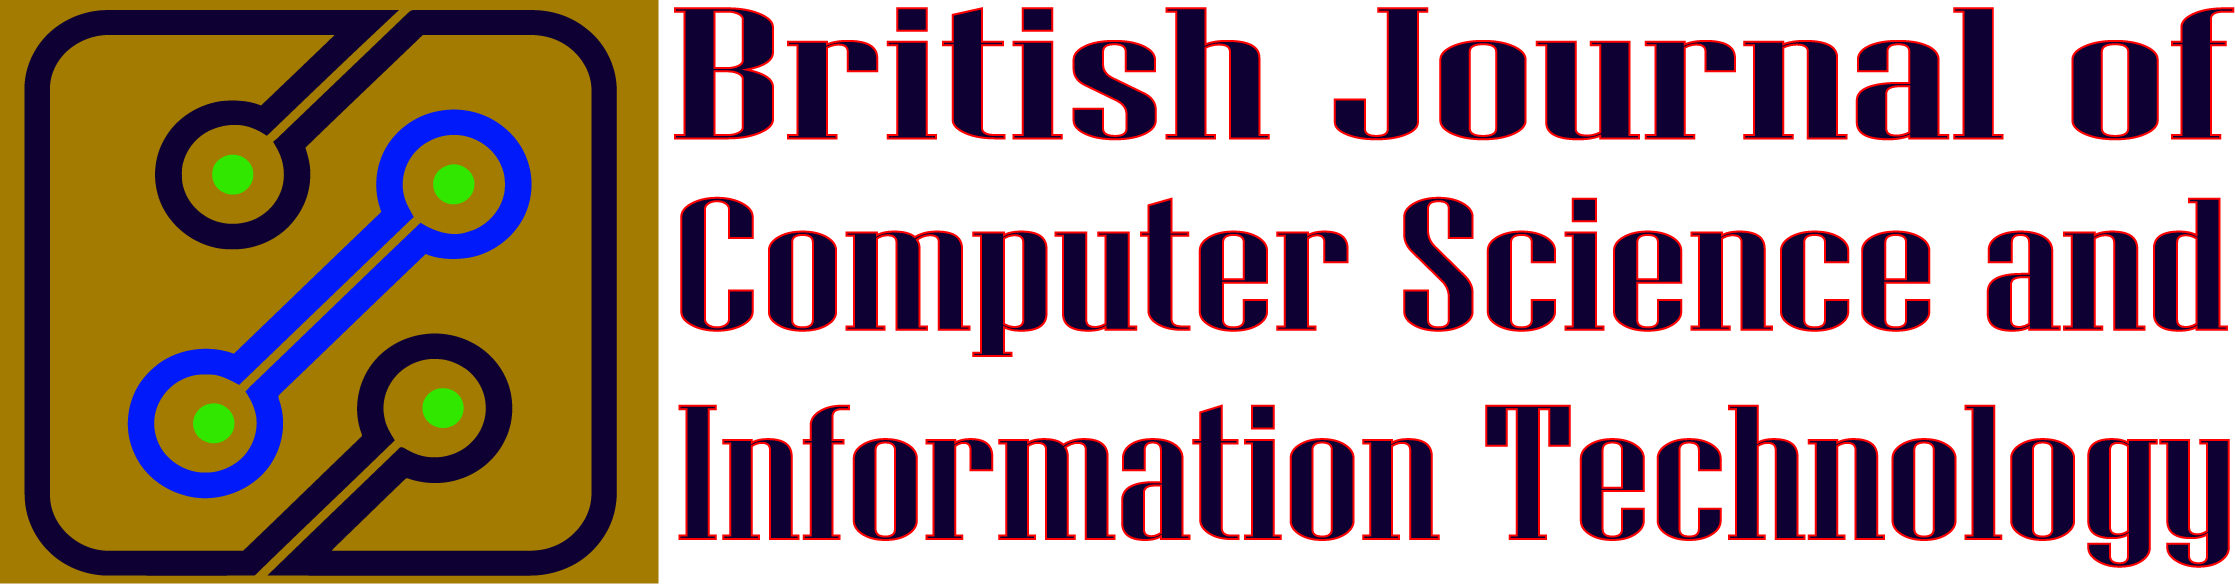 British Journal of Computer Science and Information Technology (BJCSIT)